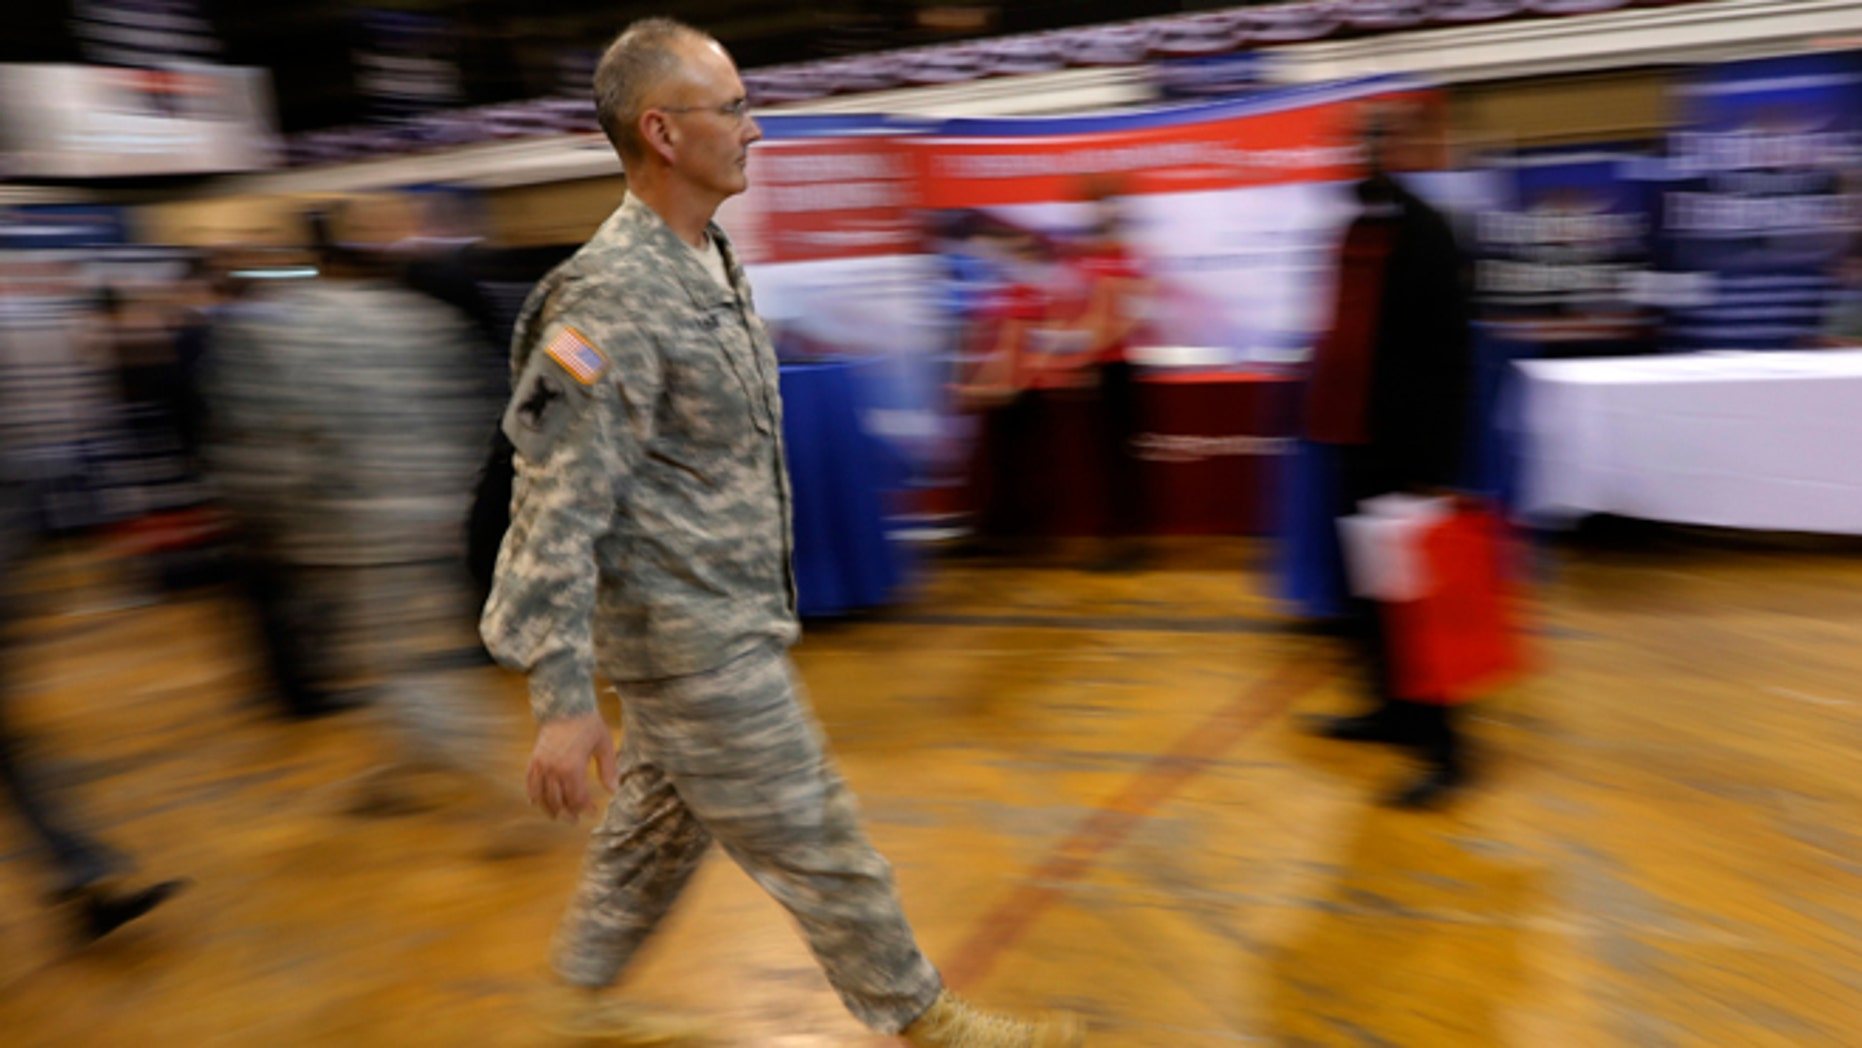 FILE: March 27, 2013: A military officer attends a job fair in New York.